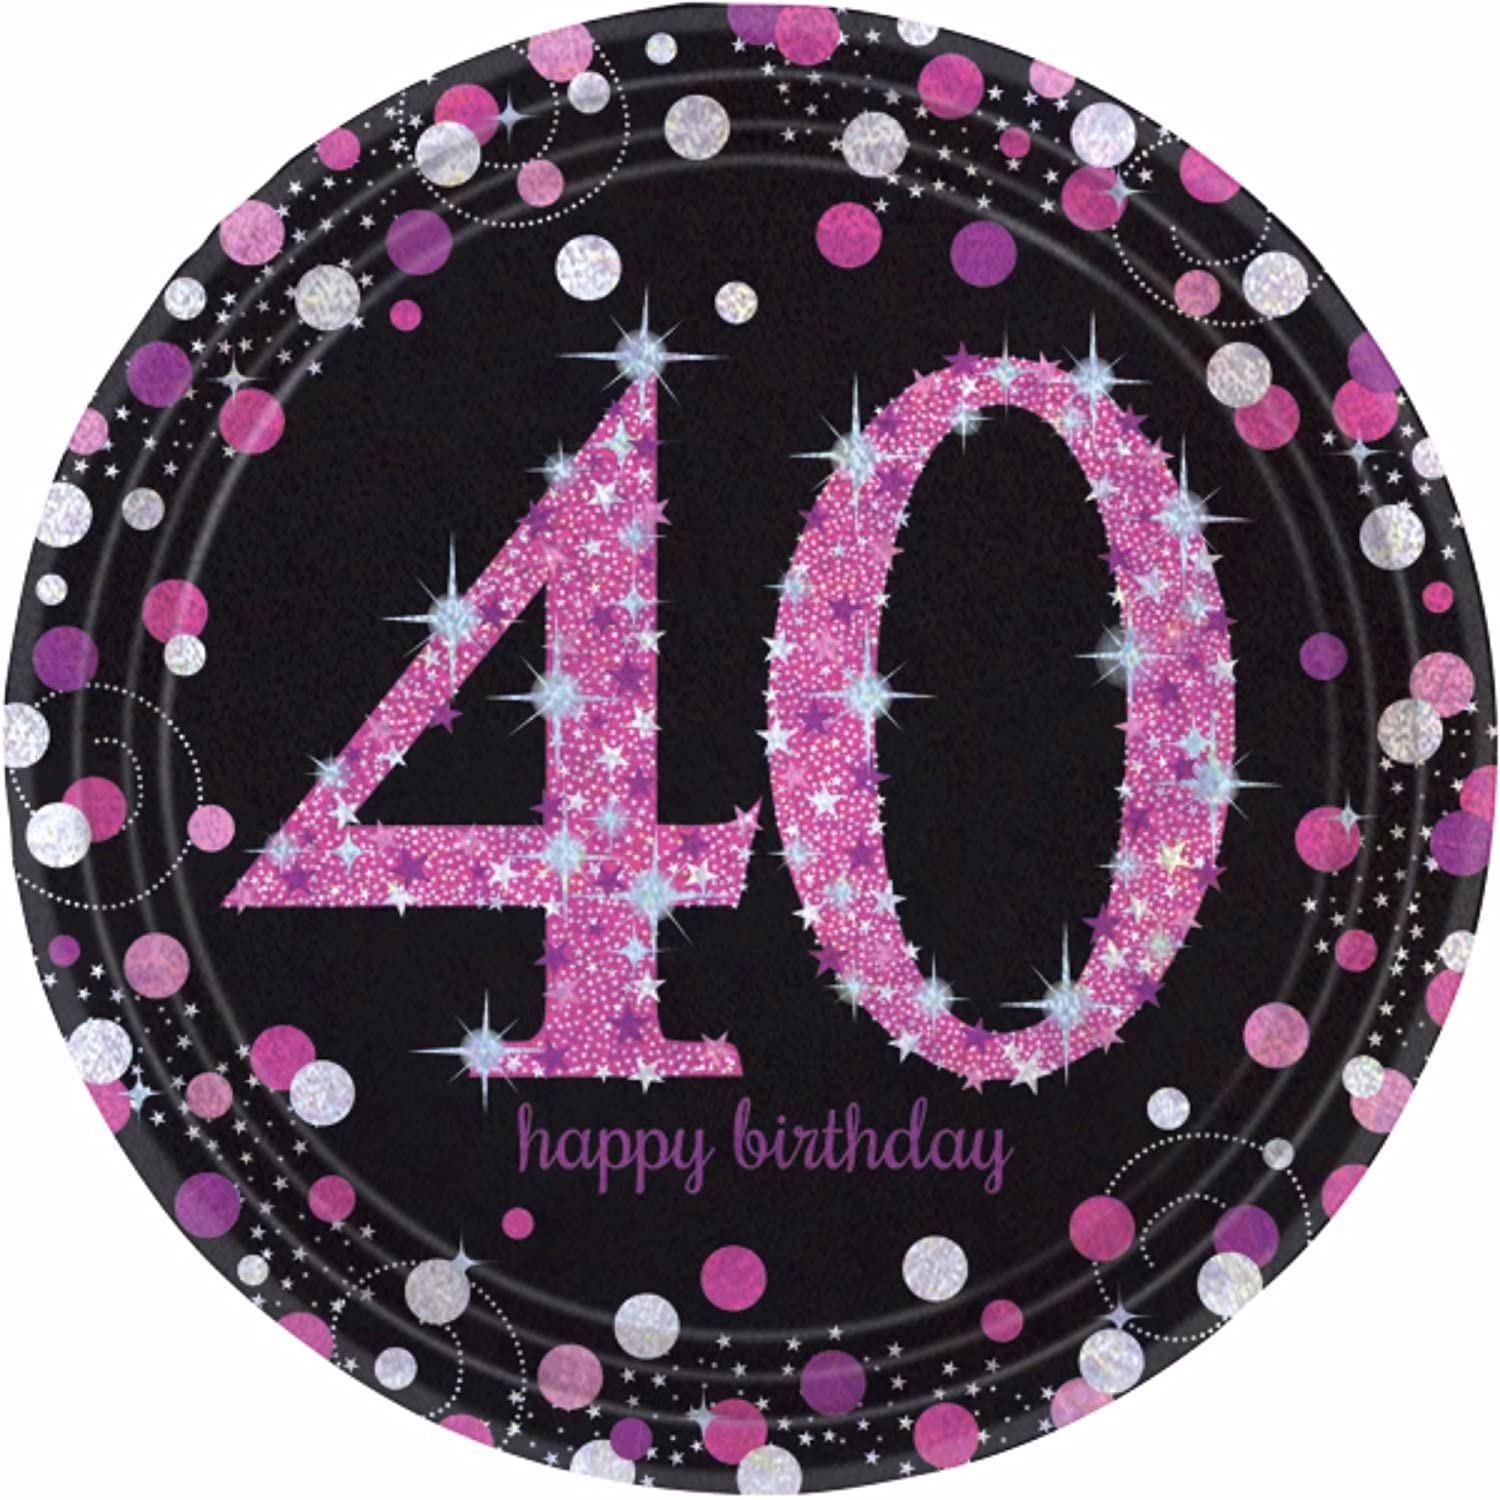 Rose Gold 40th Birthday Party Supplies Tableware /& Decorations Glitz Age 40